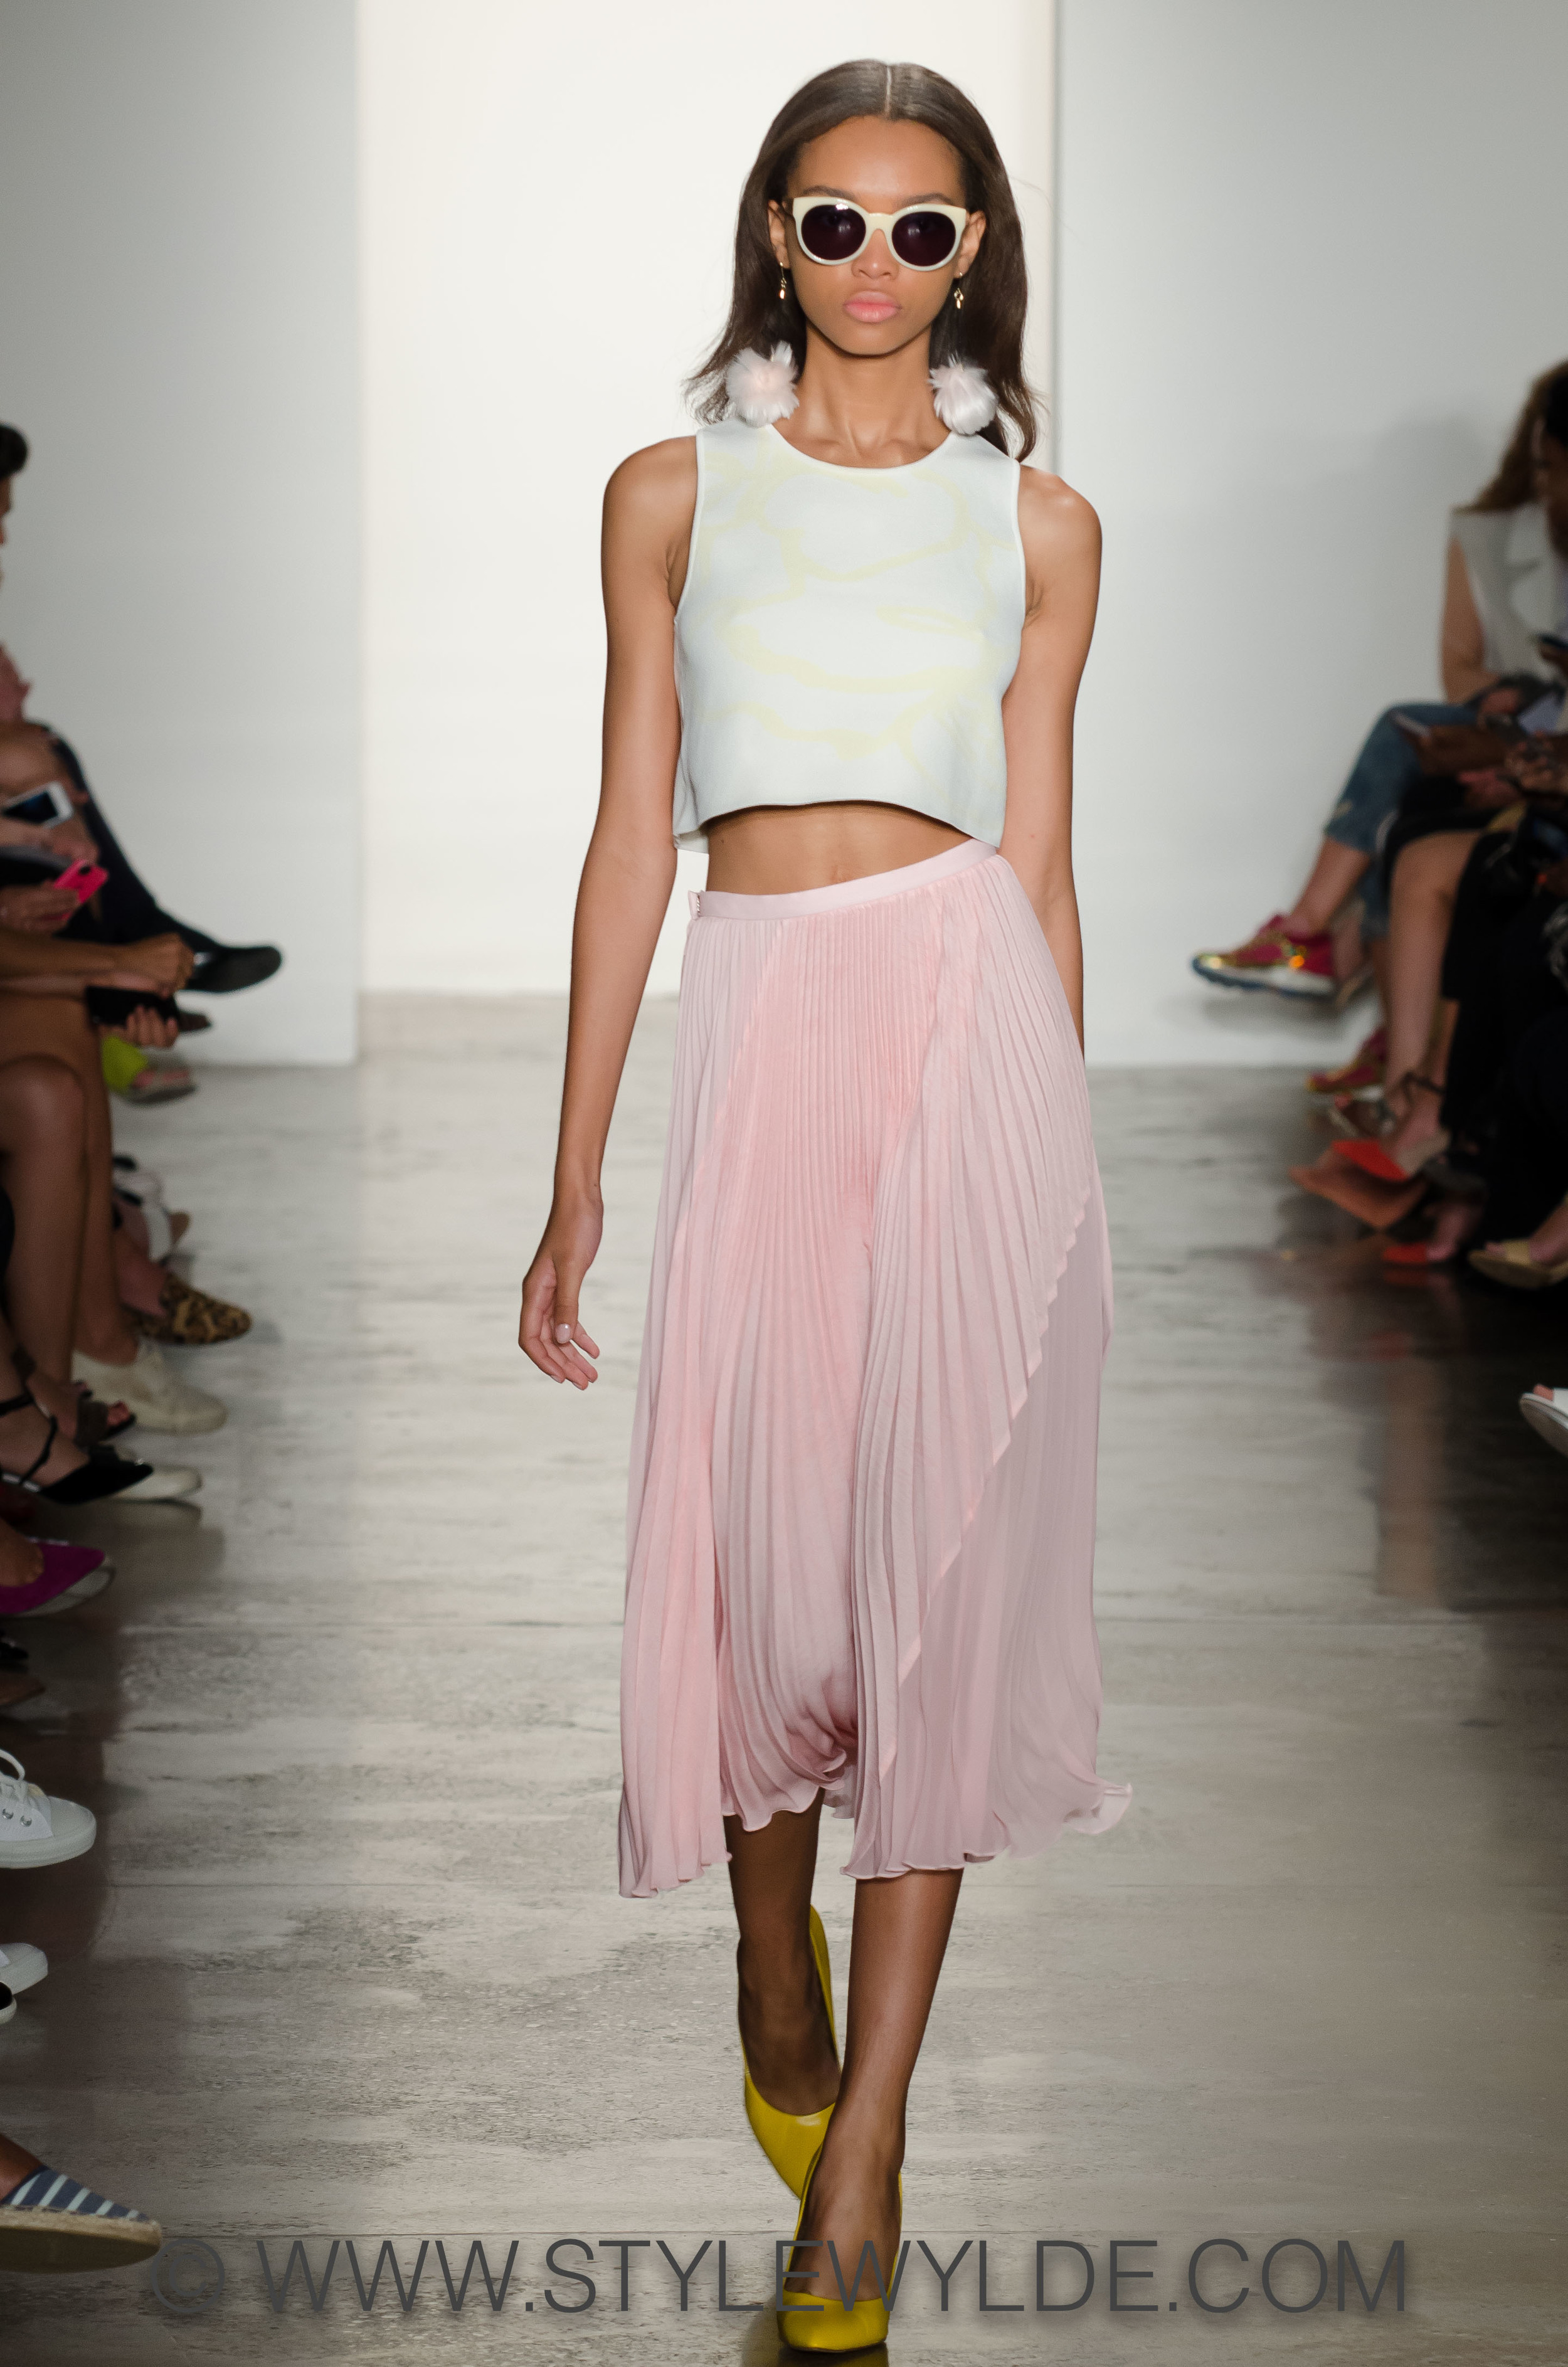 StyleWylde_Timo_SS15_FOH (29 of 38).jpg